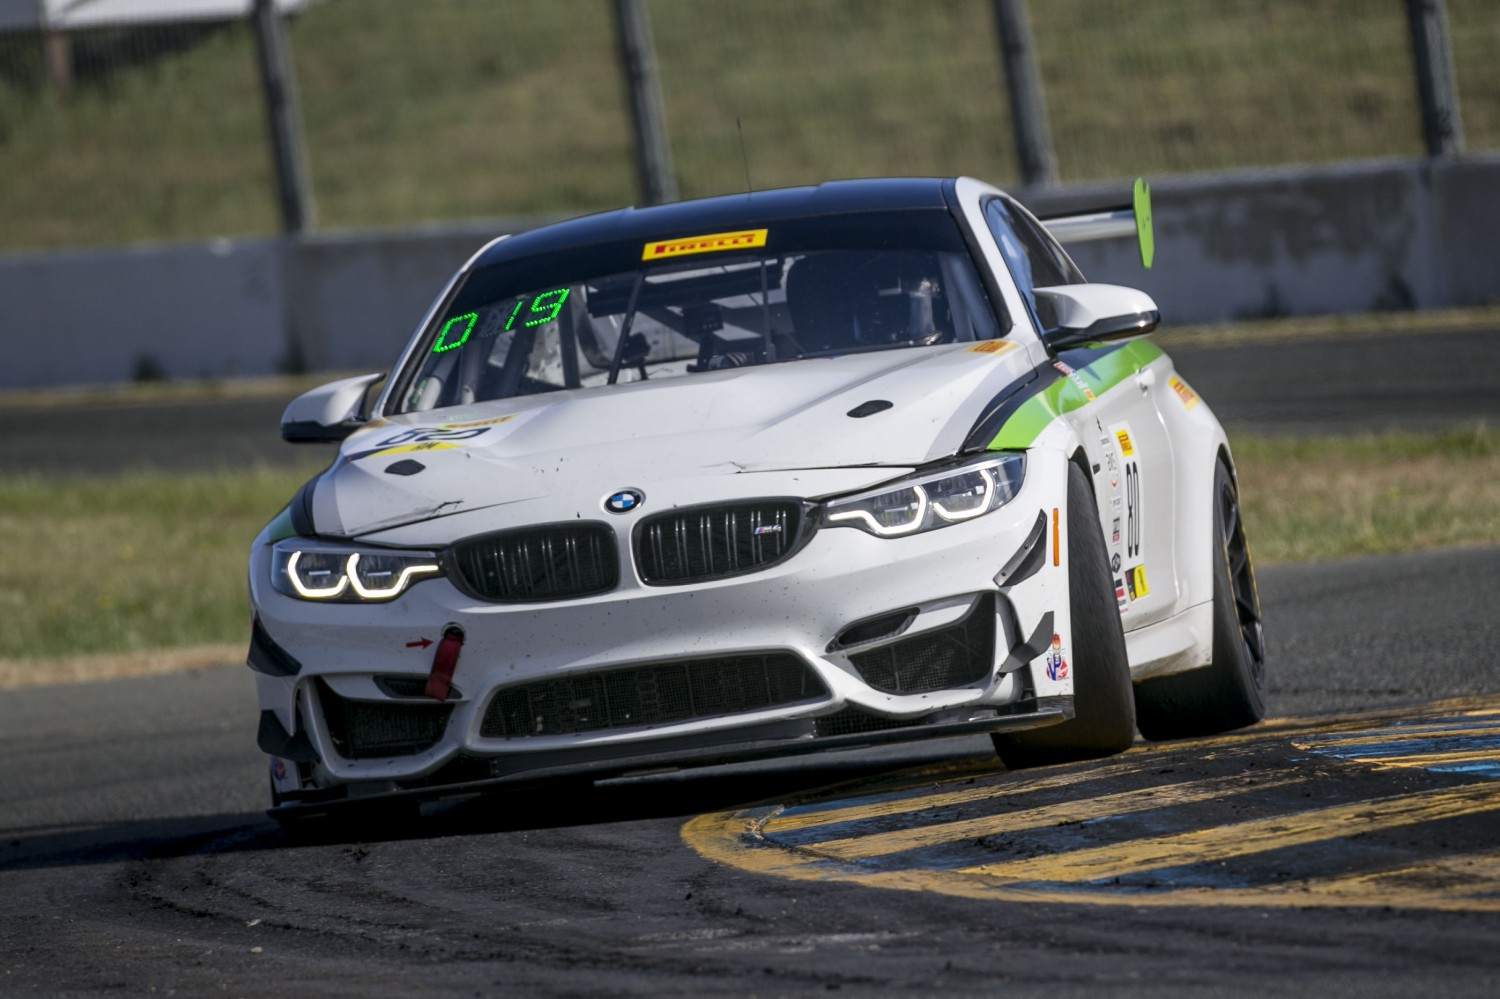 #80, Rearden Racing, BMW M4 GT4, Dmitri Novikov, Monticello Motor Club, Stance, Richard Mille, Rowing Blazers, SRO at Sonoma Raceway, Sonoma CA  | Brian Cleary/SRO